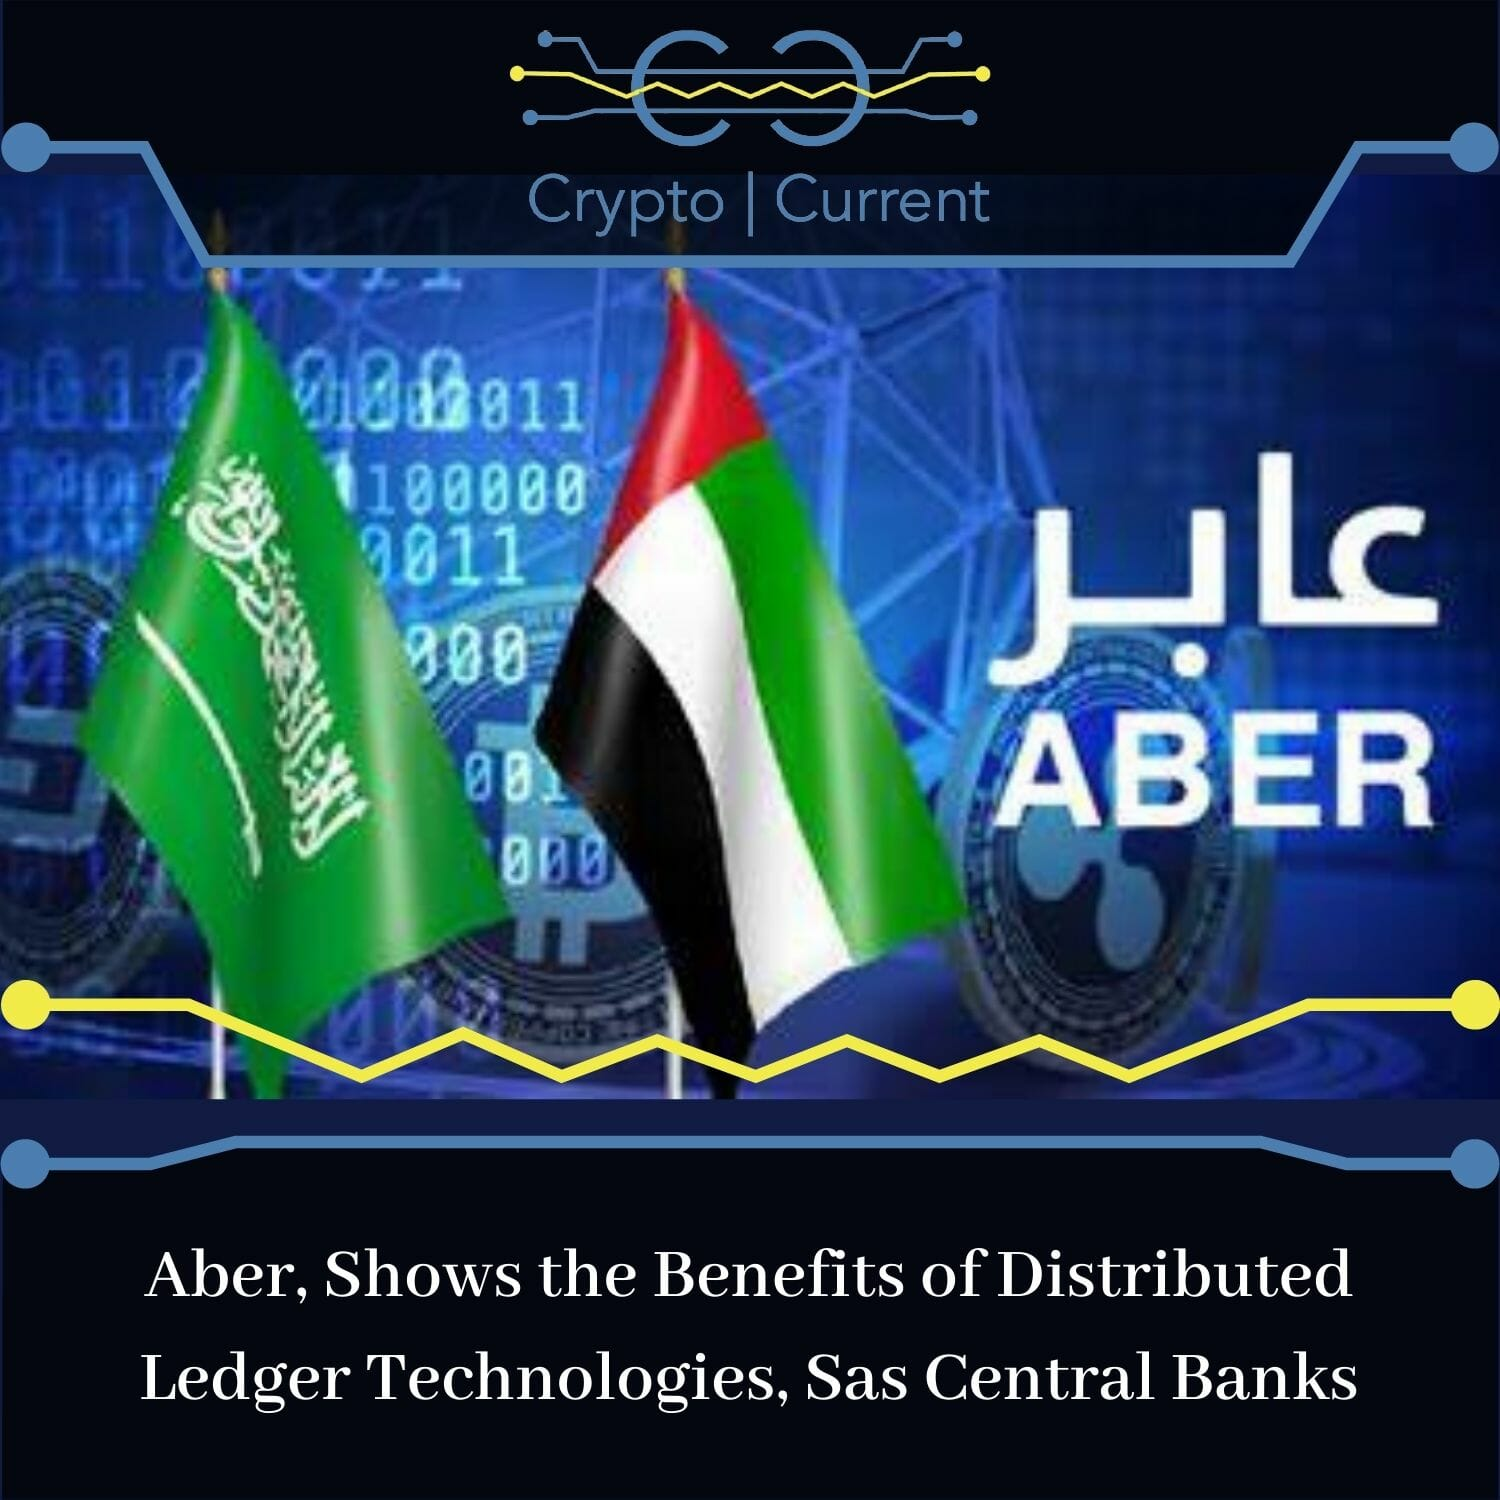 Aber, Shows the Benefits of Distributed Ledger Technologies, Sas Central Banks